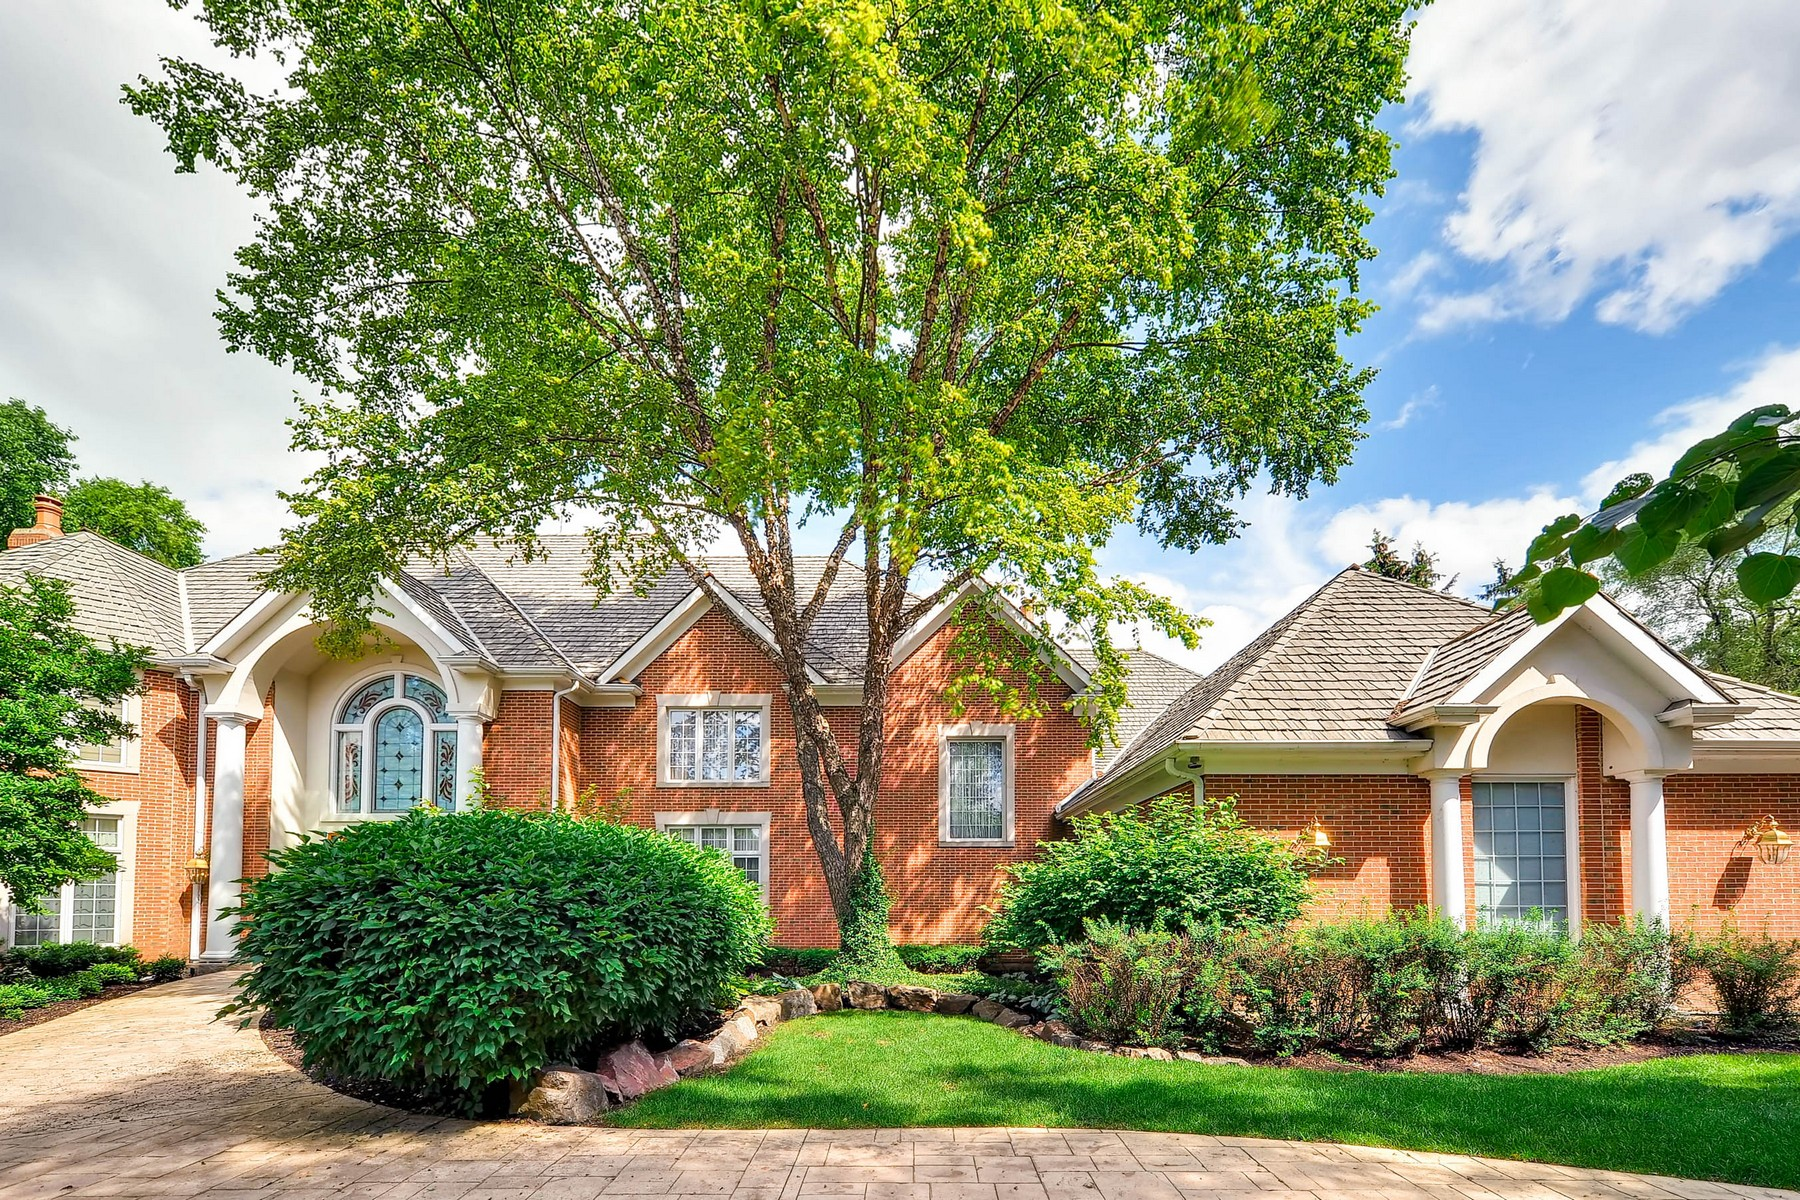 Single Family Home for Sale at Prepare To Be Wowed 33 Polo Drive South Barrington, Illinois 60010 United States